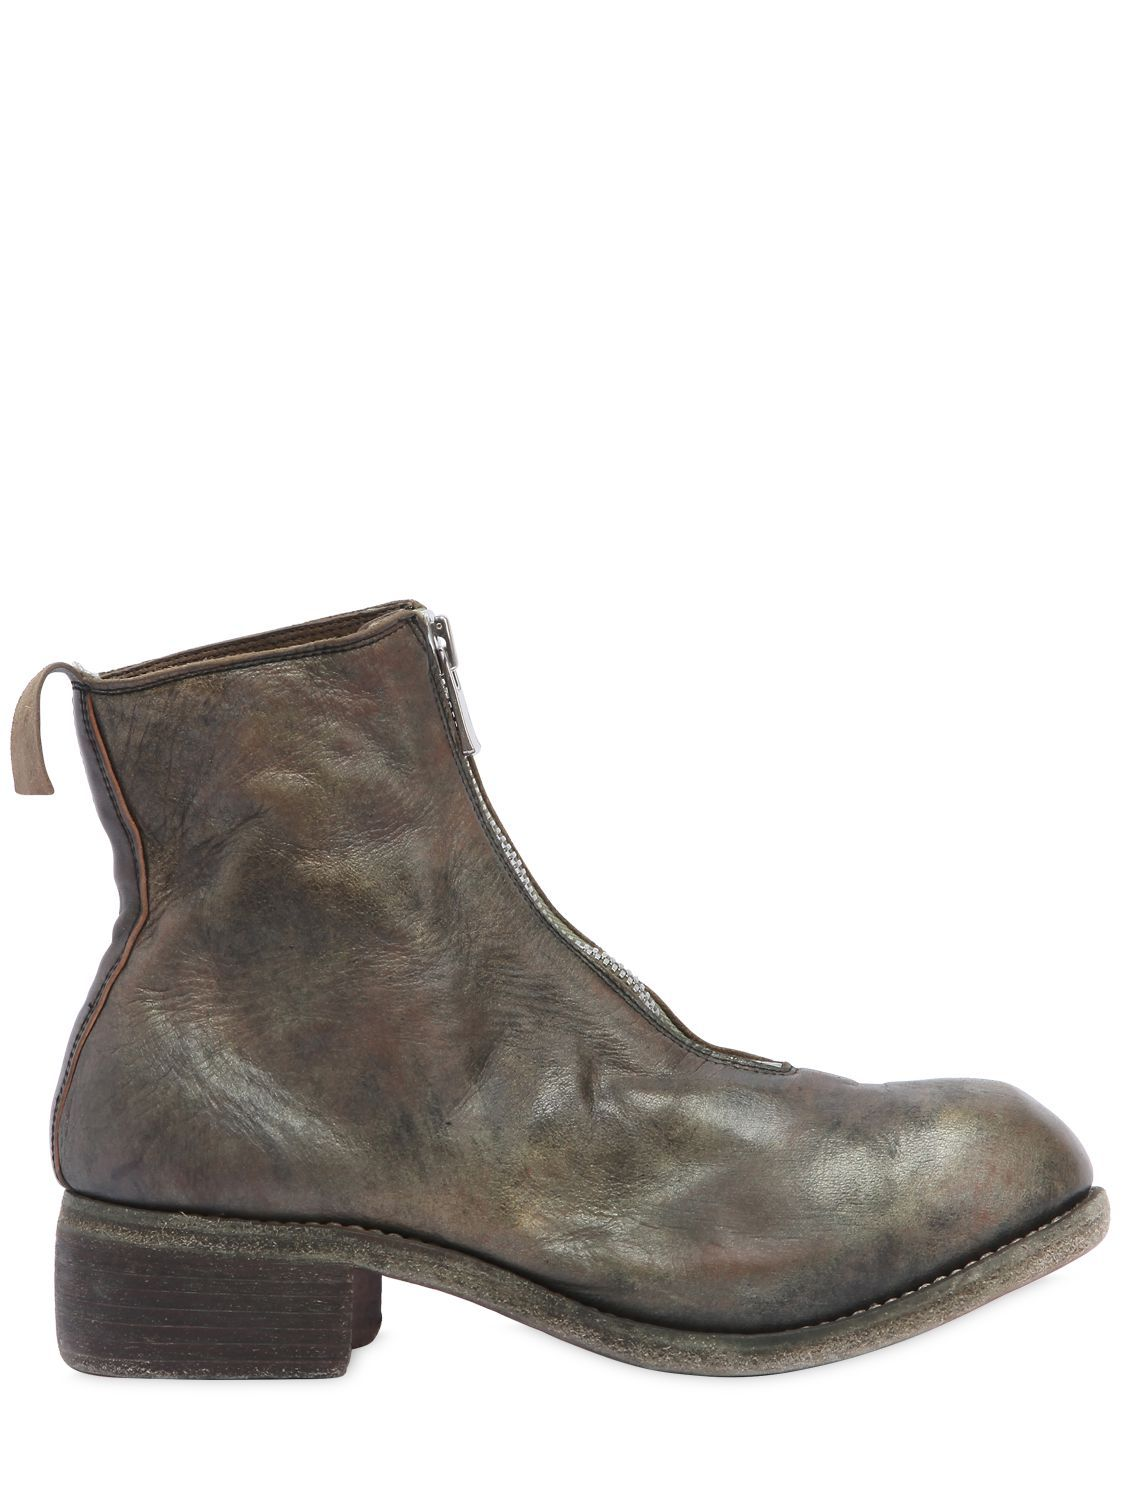 GUIDIPL1 ZIP-UP FULL GRAIN LEATHER BOOTS AEmwz8JOpK